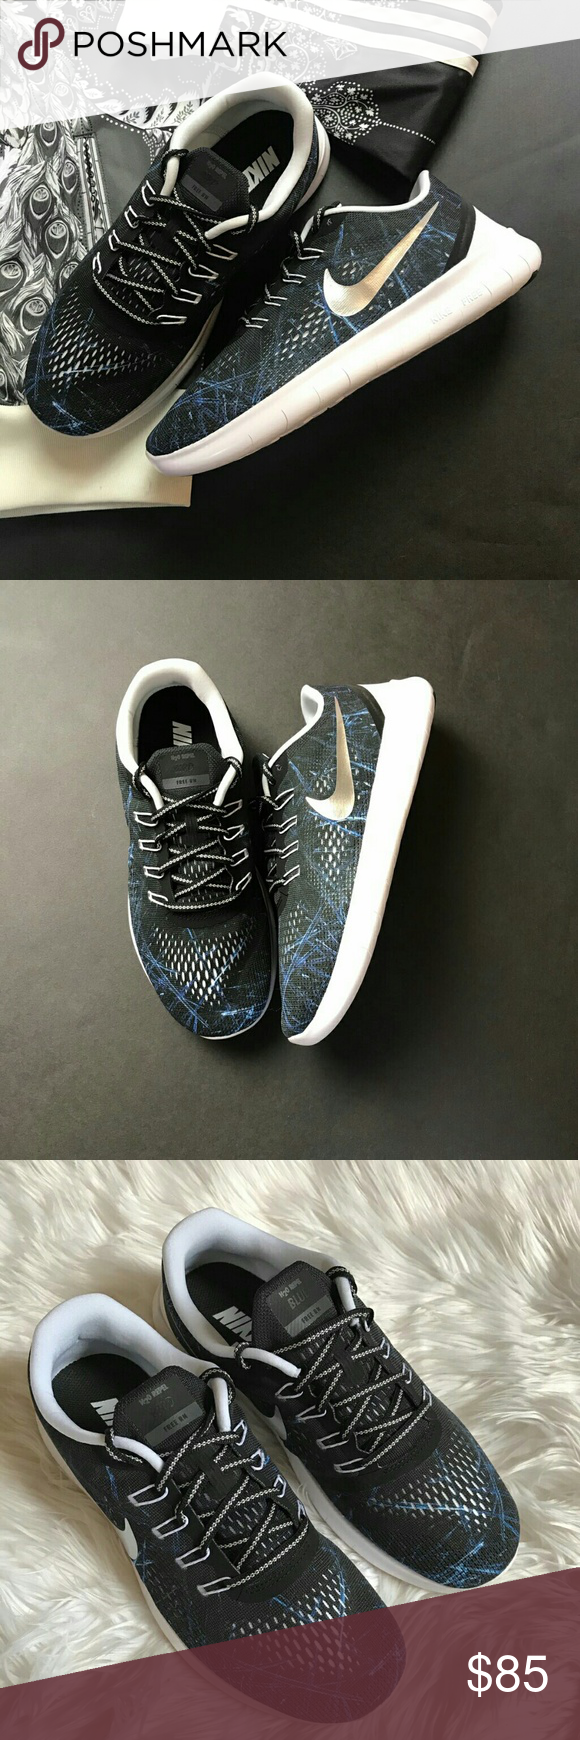 NWT Nike ID blue and black. Brand New no box custom made Nike ID! Price is  firm. Nike Free running shoes brings you miles of comfort with an  exceptionally ...